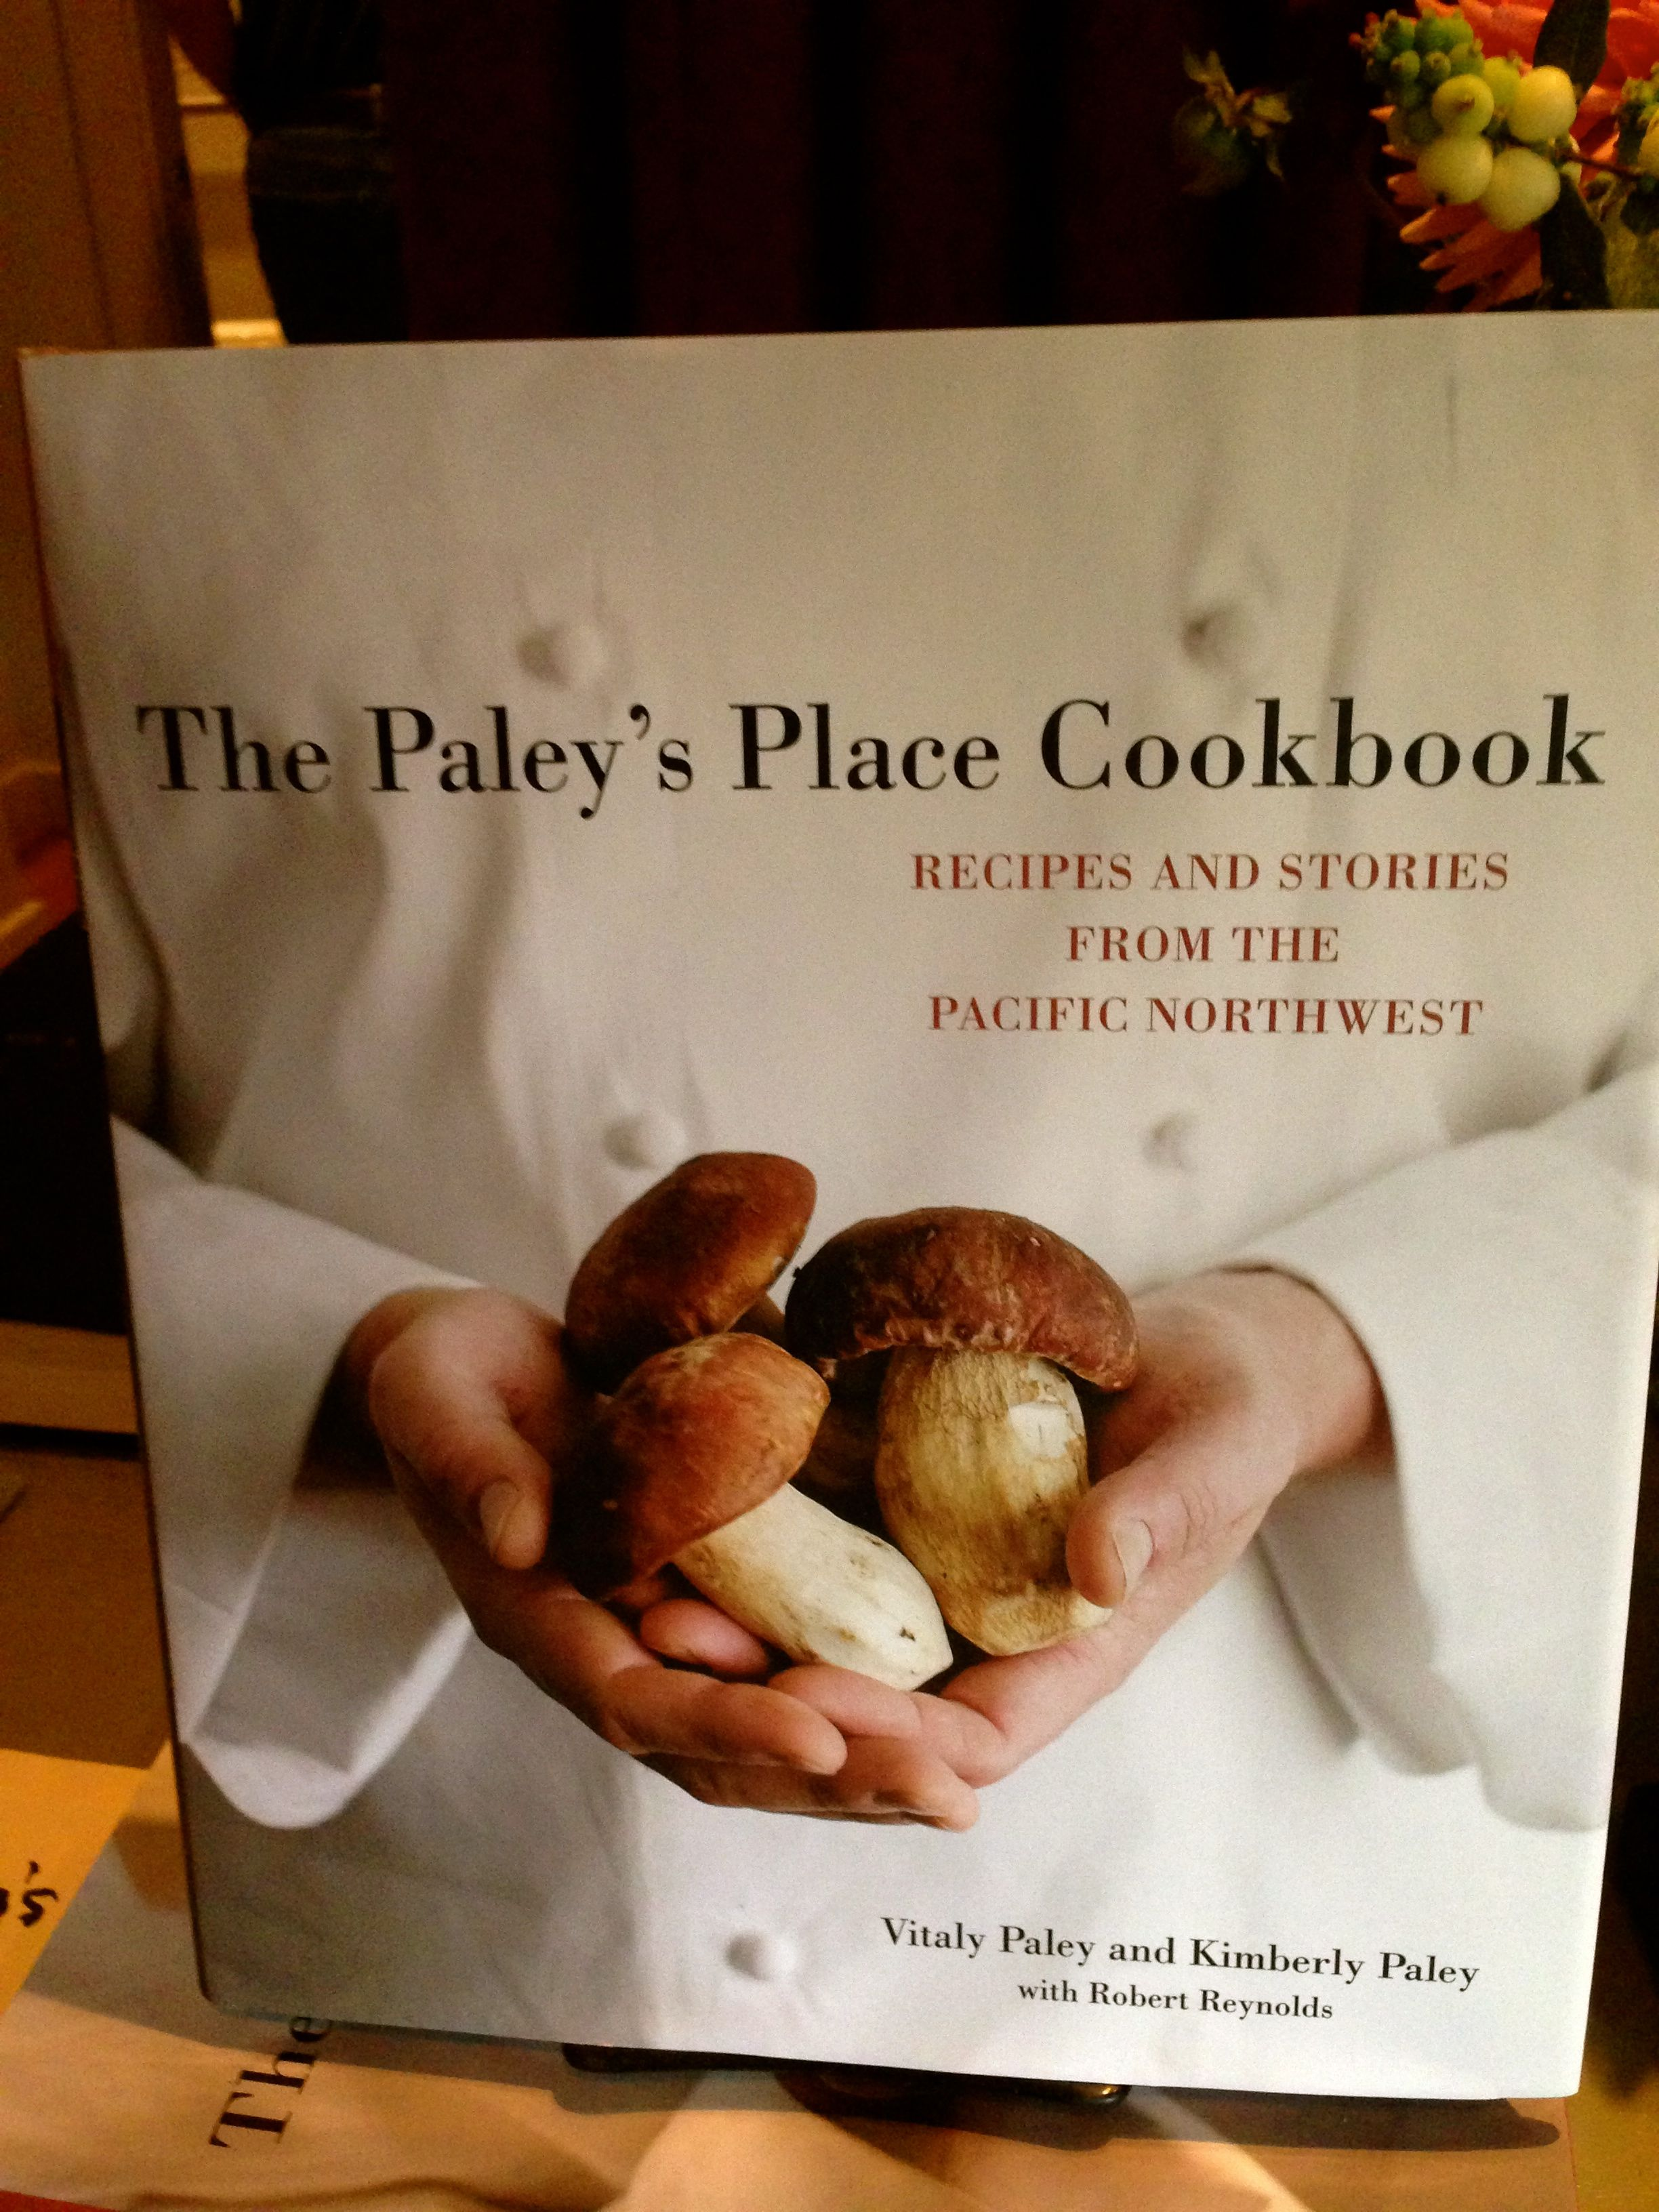 The Paley's Place Cookbook!